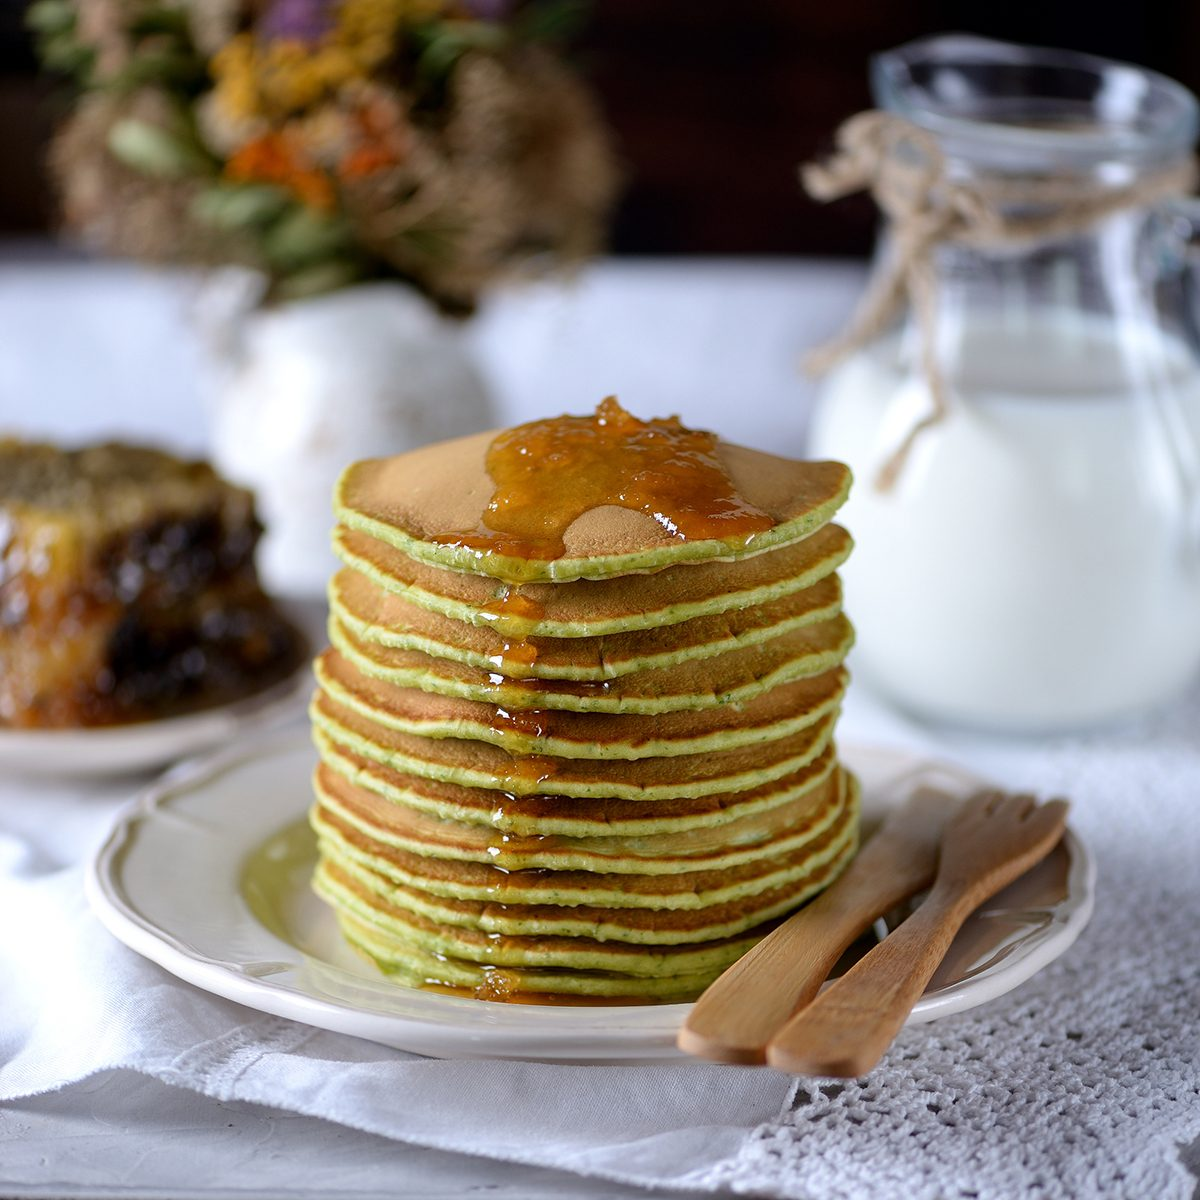 Spinach pancakes with milk and organic honey in honeycombs.